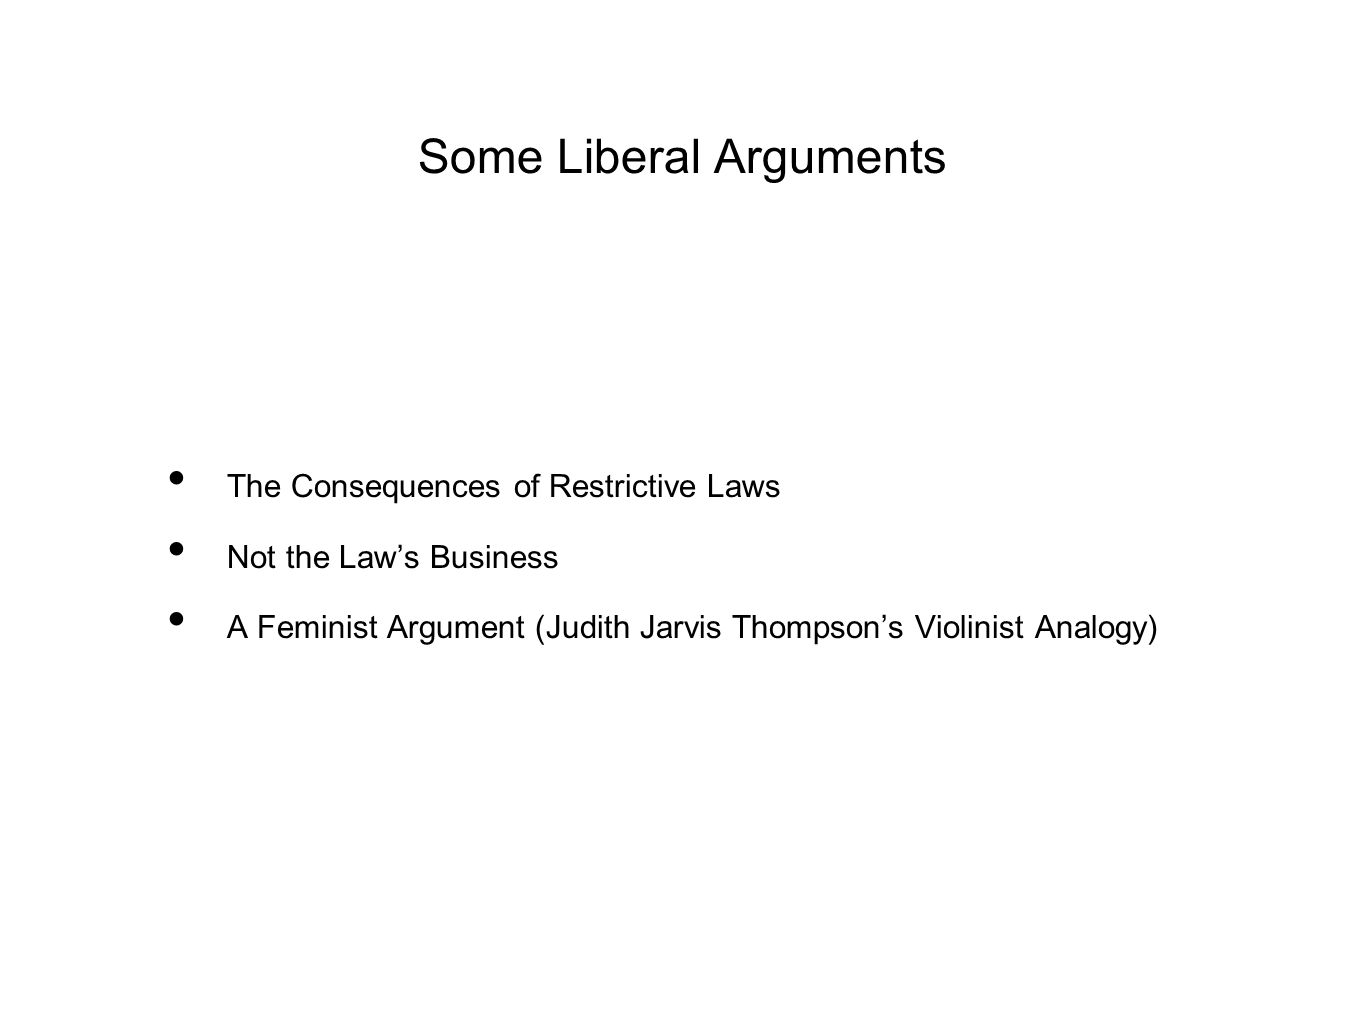 Some Liberal Arguments The Consequences of Restrictive Laws Not the Law's Business A Feminist Argument (Judith Jarvis Thompson's Violinist Analogy)